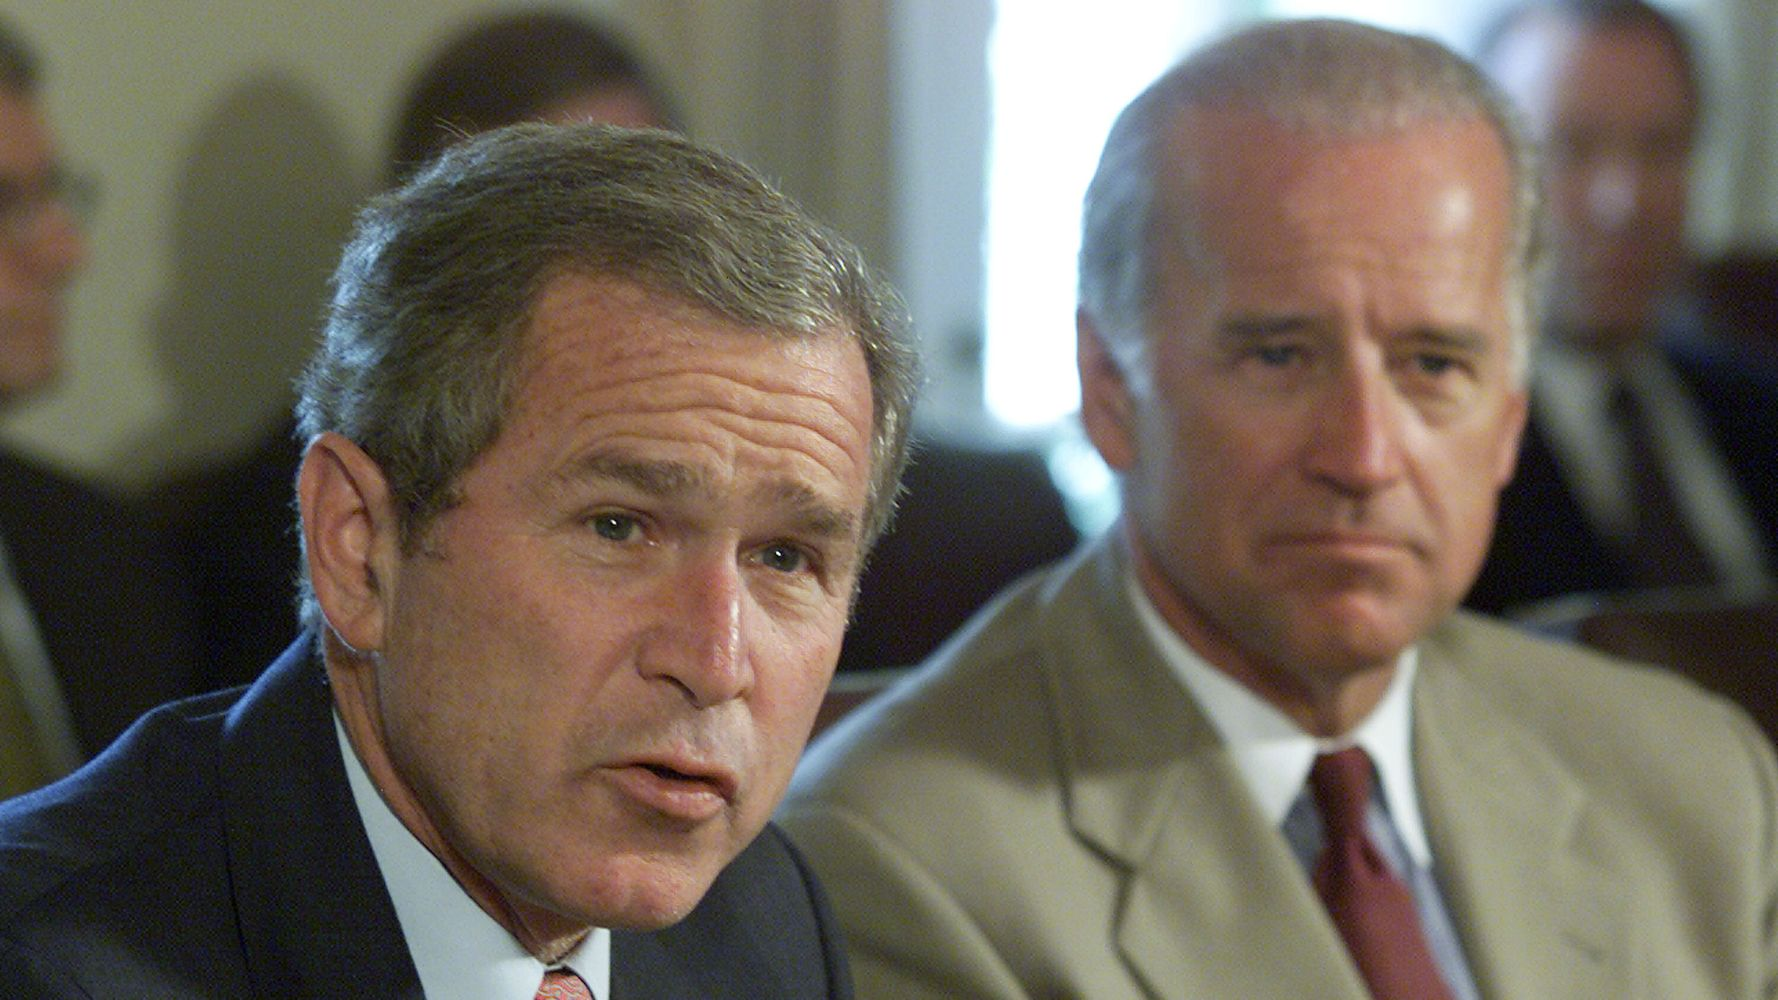 Biden Reportedly Told Bush He'd Get The Nobel Peace Prize If He Could Invade Iraq Quickly